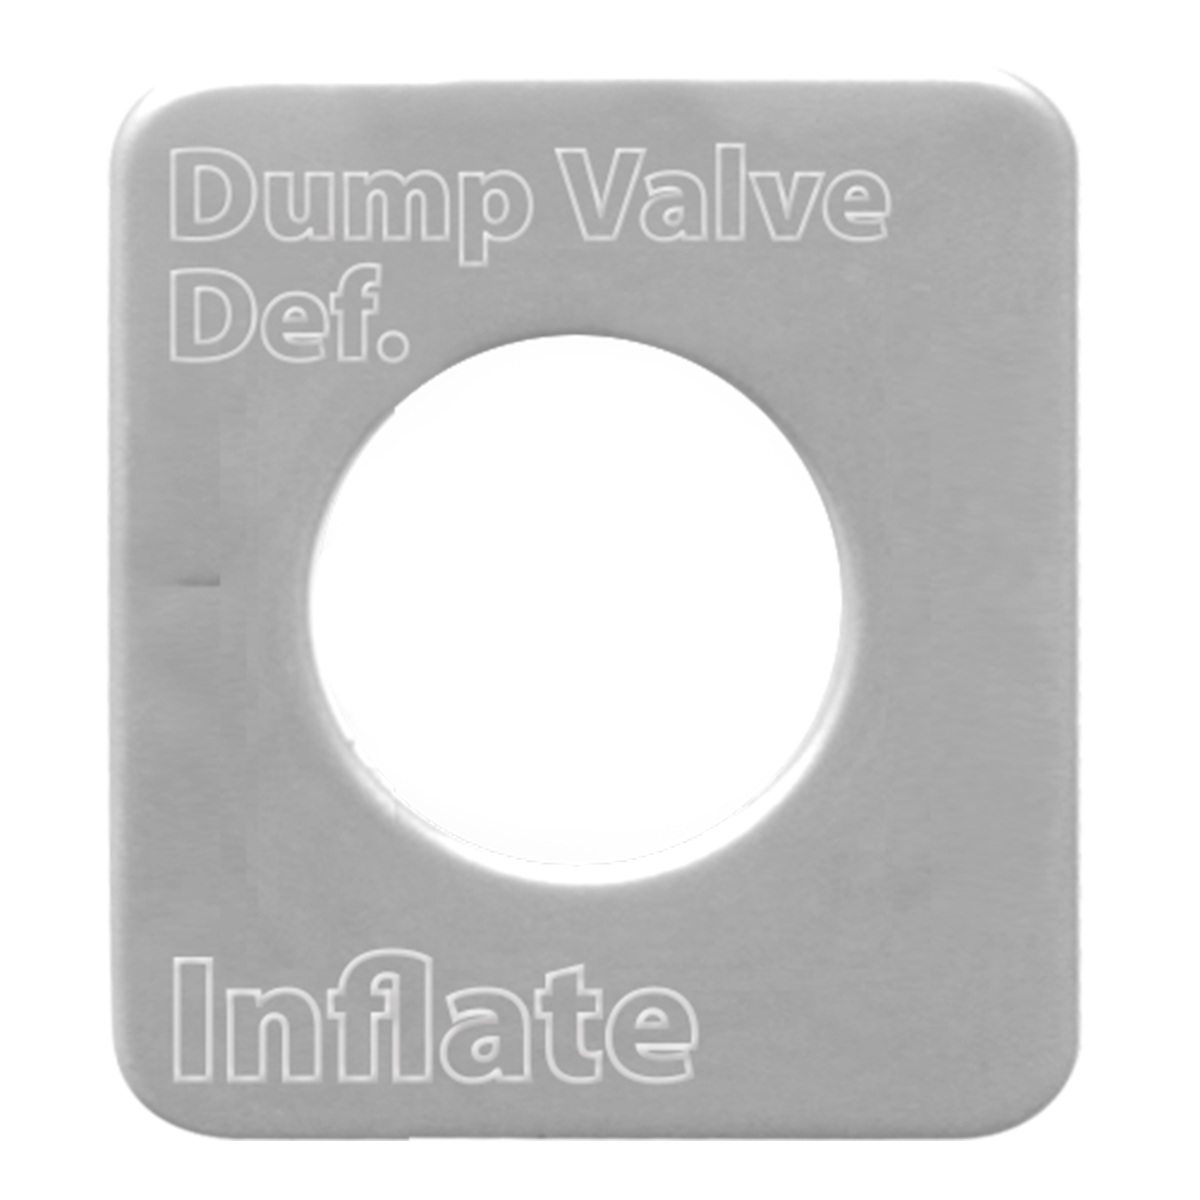 68535 Stainless Steel Dump Valve Switch Plate for KW